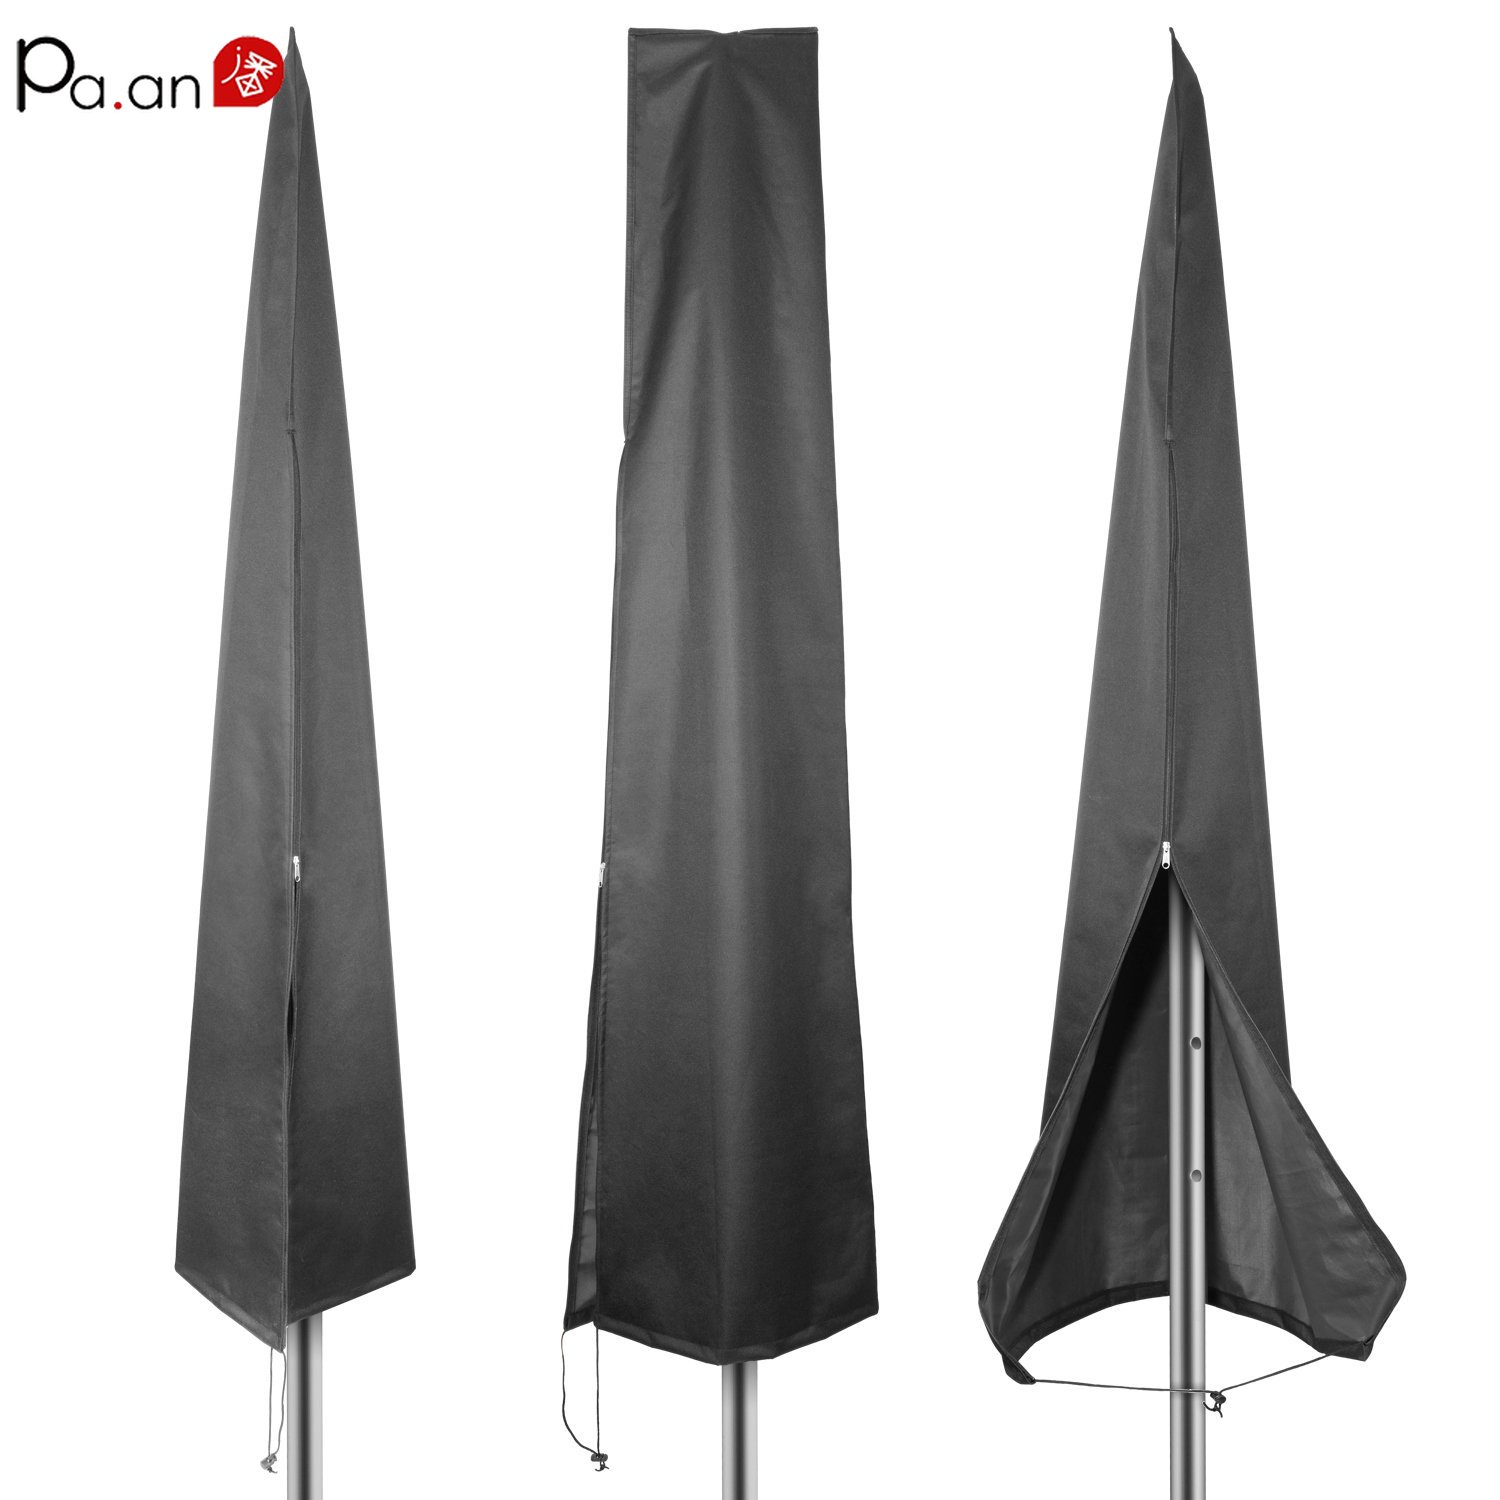 Sun umbrella Patio  Anti-aging Garden Parasol Covers Dustproof Pavilion Beach  Durable Outdoor Furniture Protect